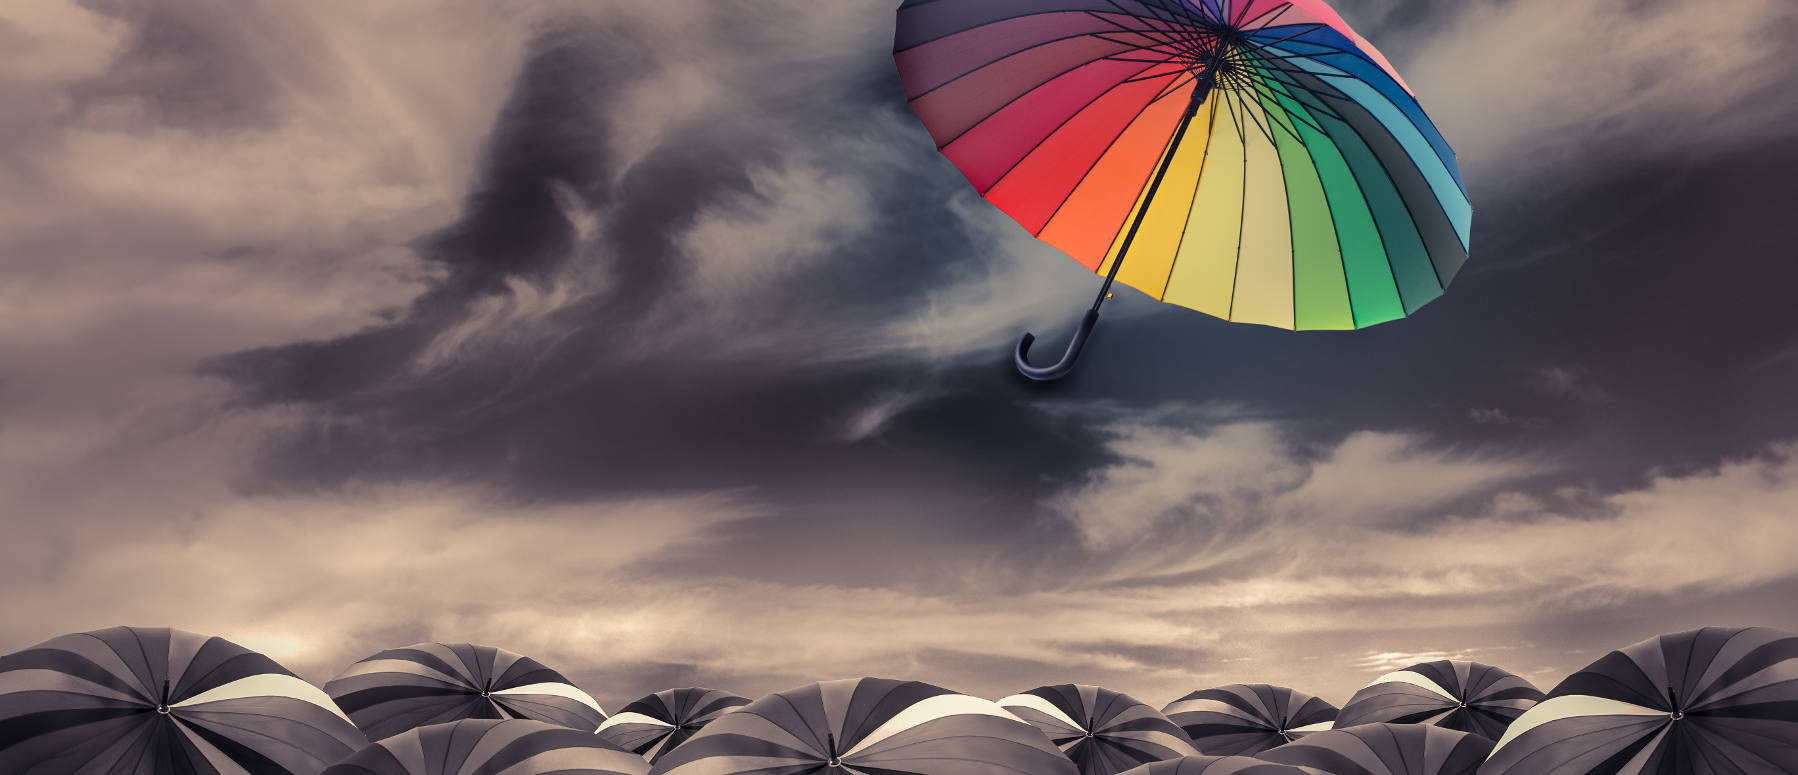 rainbow umbrella fly out the mass of black umbrellas - Be different ! - www.crea3.com